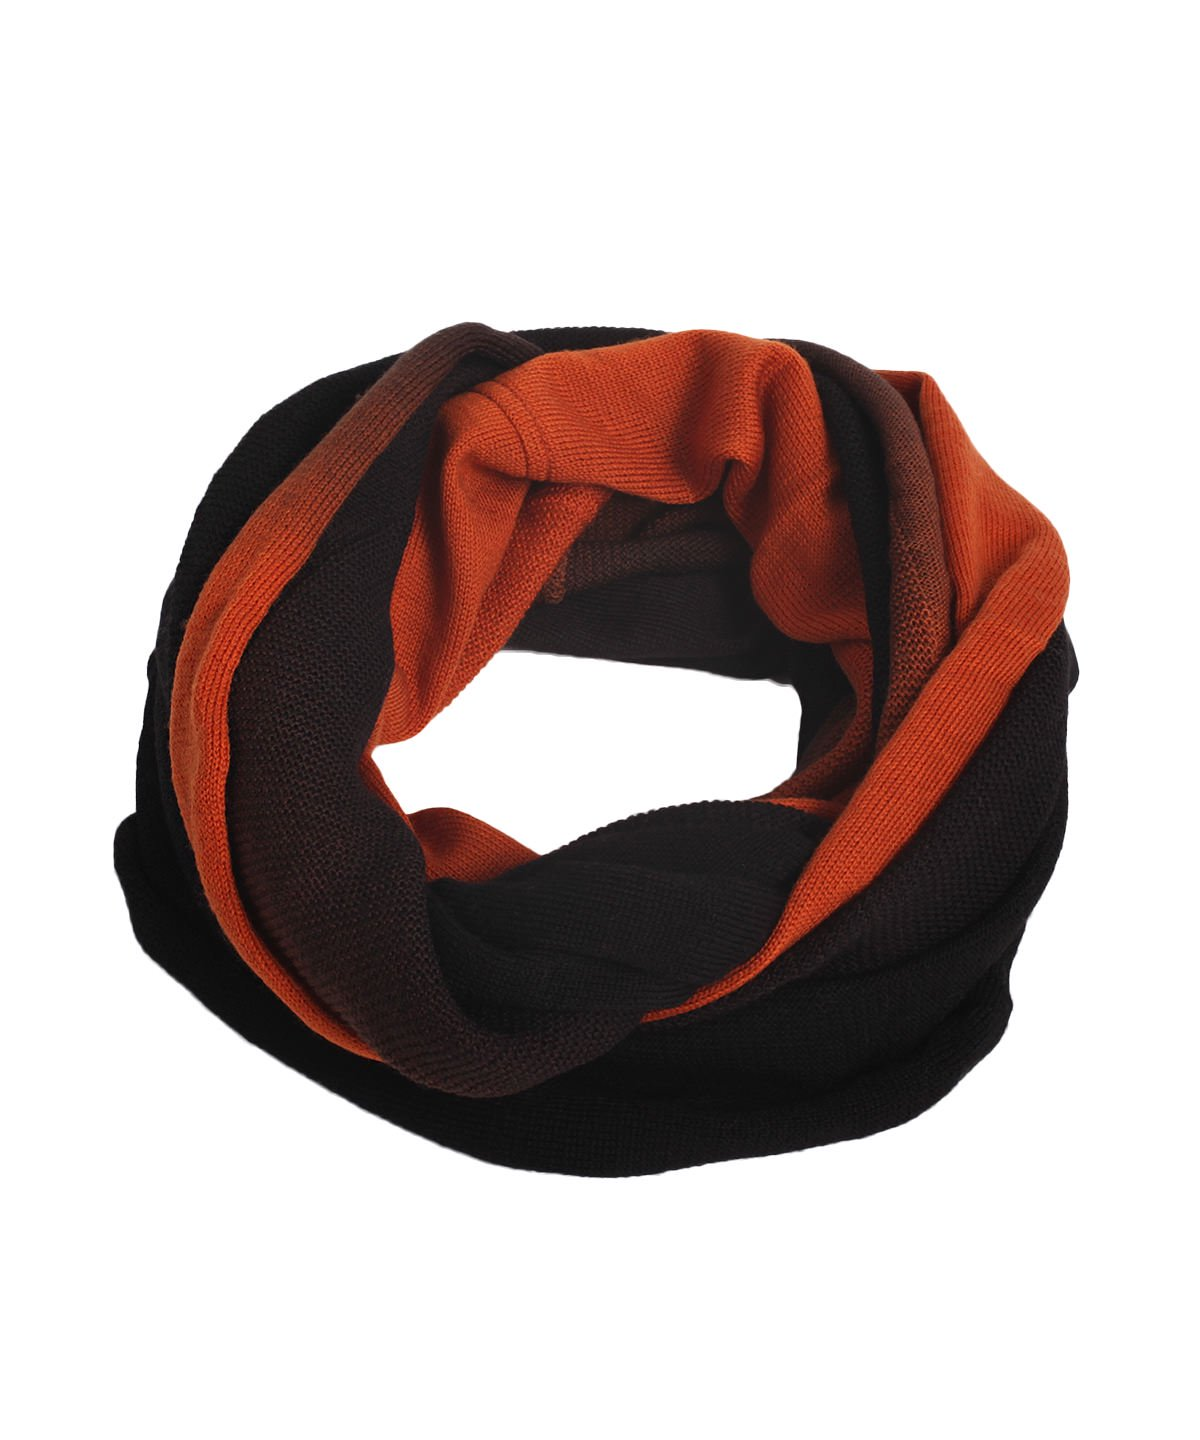 GRADATION TWIST NECKWARMER 詳細画像4